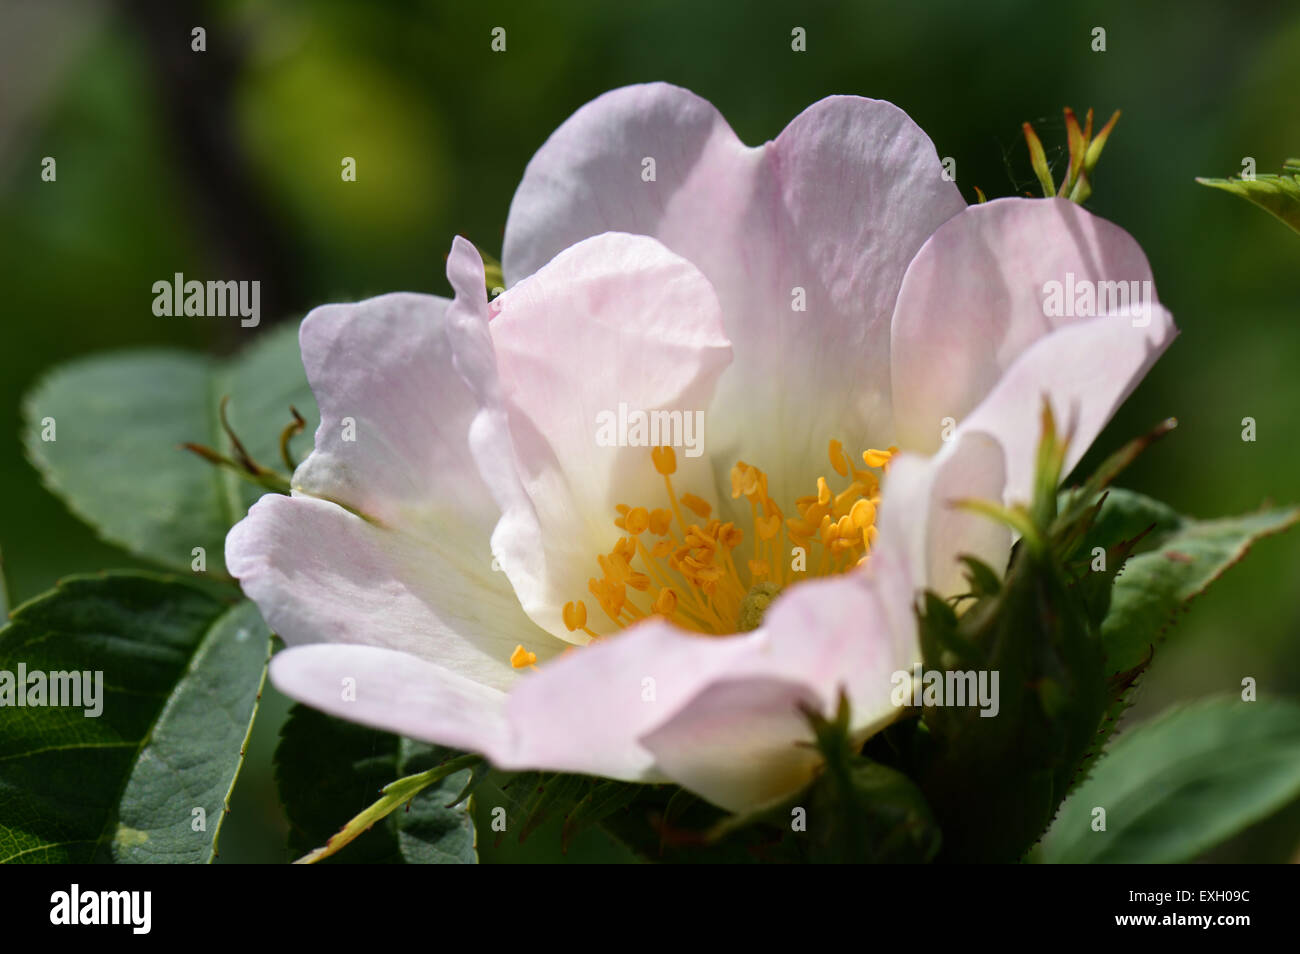 Dog Rose Rosa Canina Flowering Wild Climbing Plant With Pink And